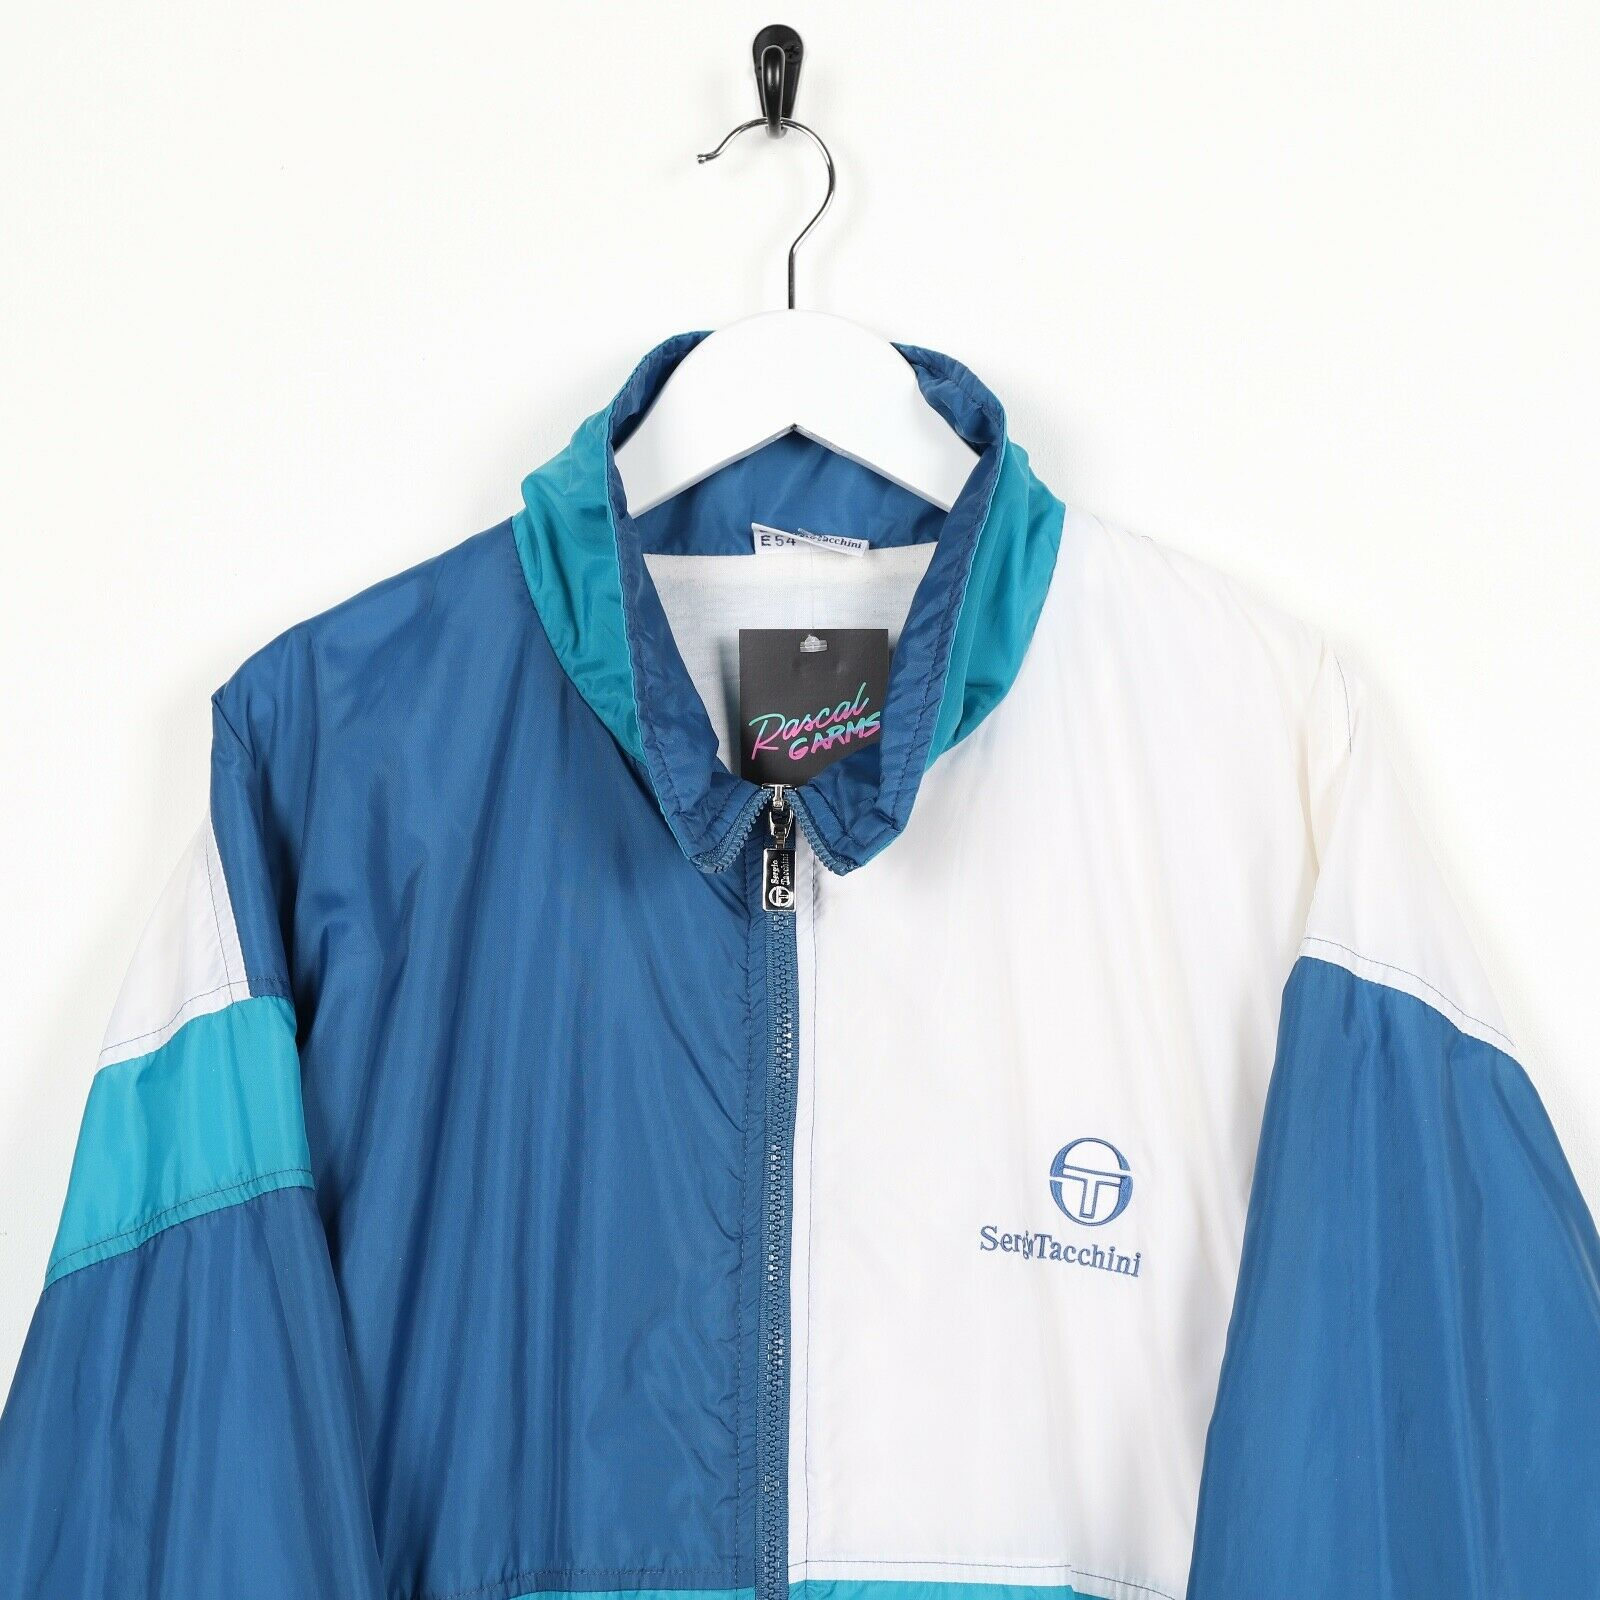 Vintage 90s SERGIO TACCHINI Soft Shell Windbreaker Jacket Blue White XL